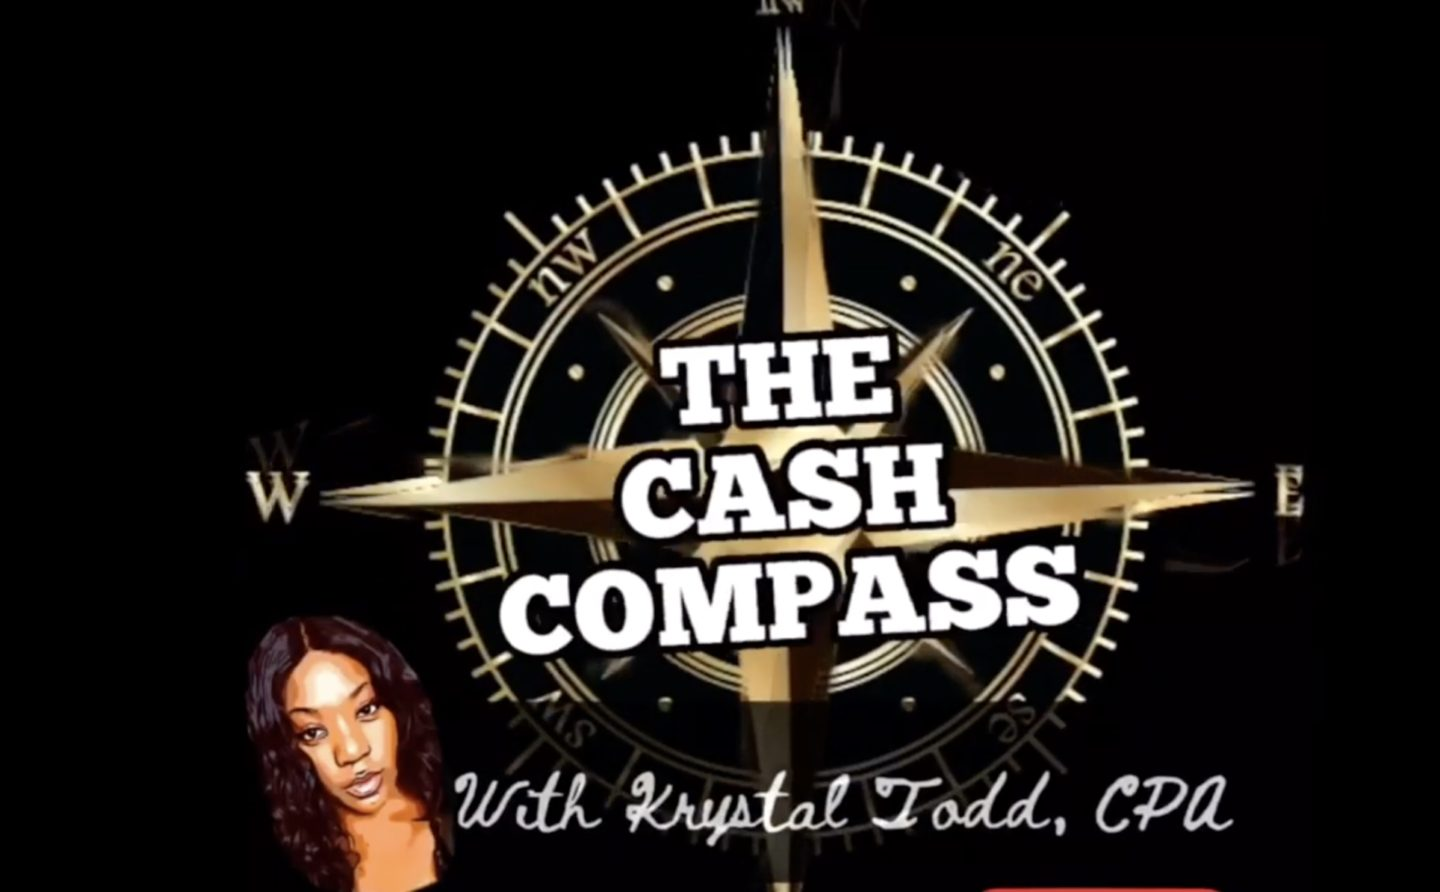 Financial Advice from The Cash Compass